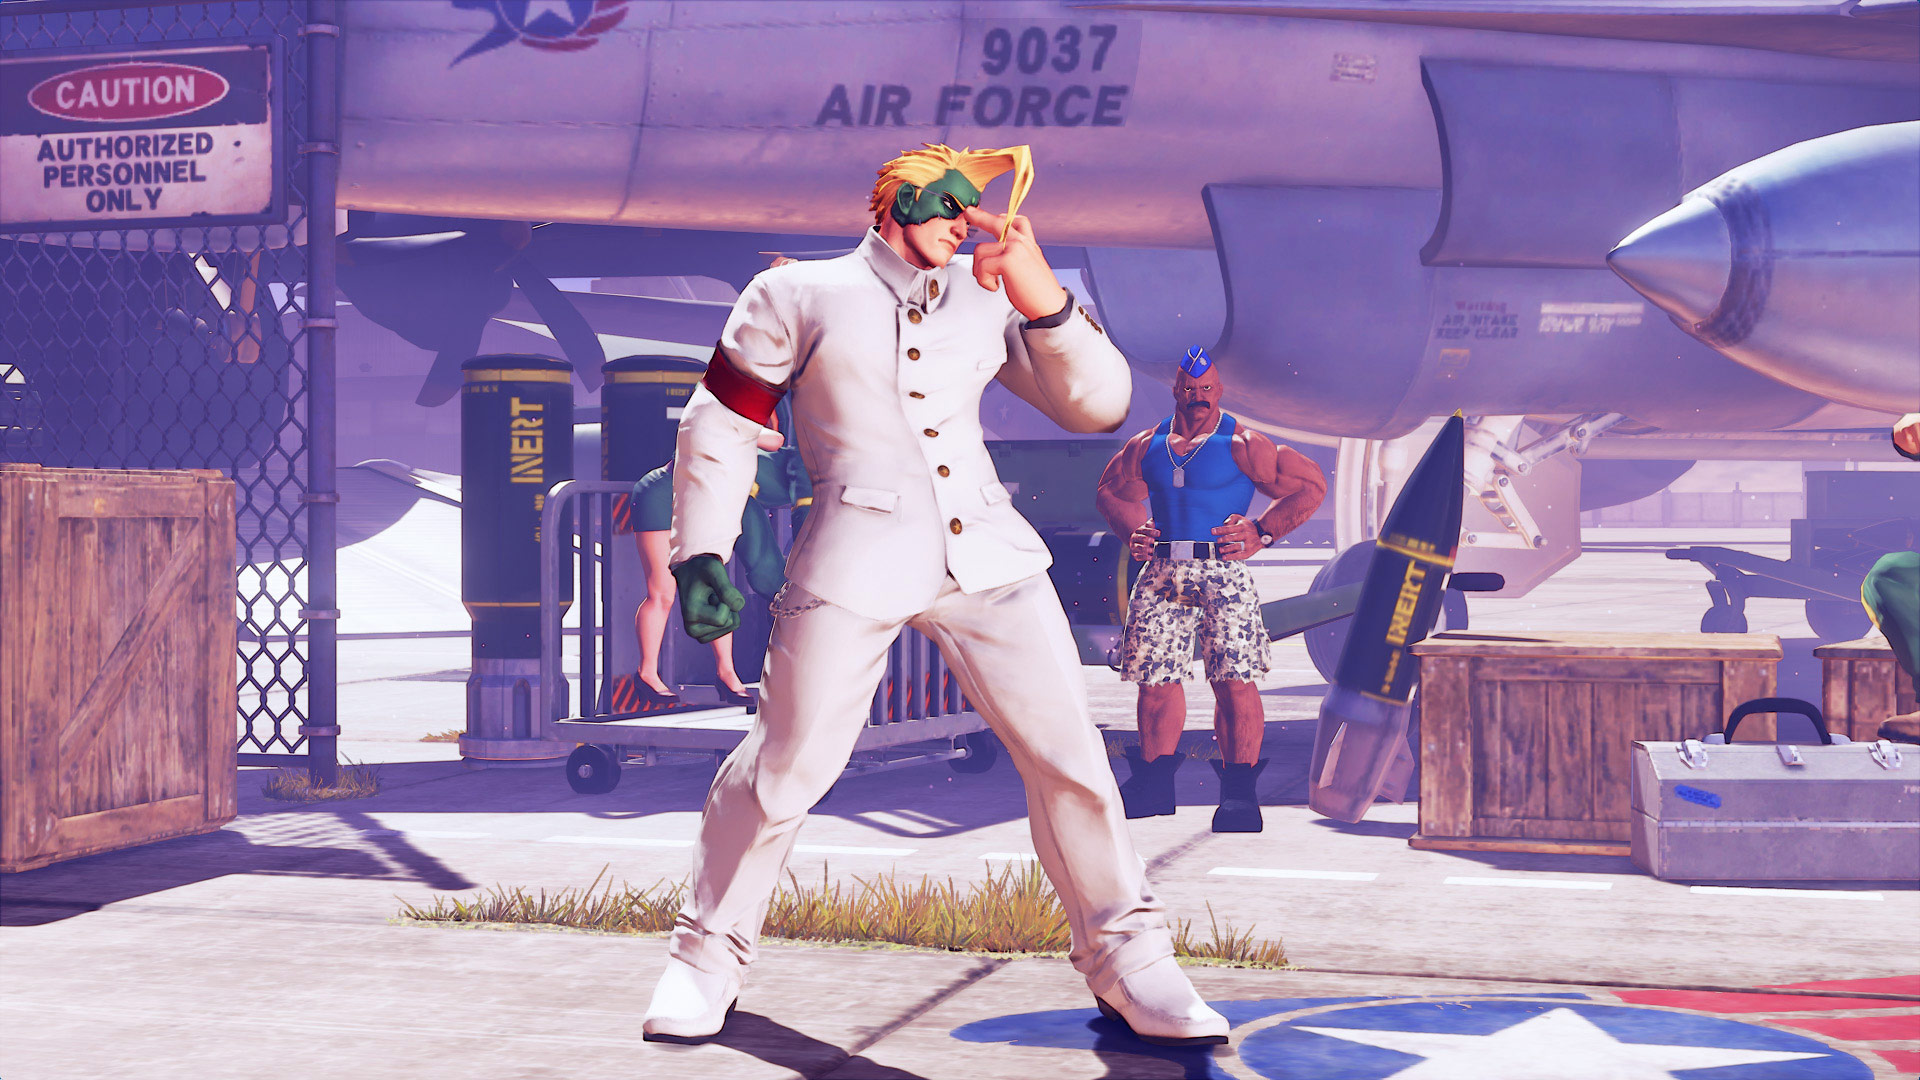 More Street Fighter 5 school costumes 3 out of 4 image gallery